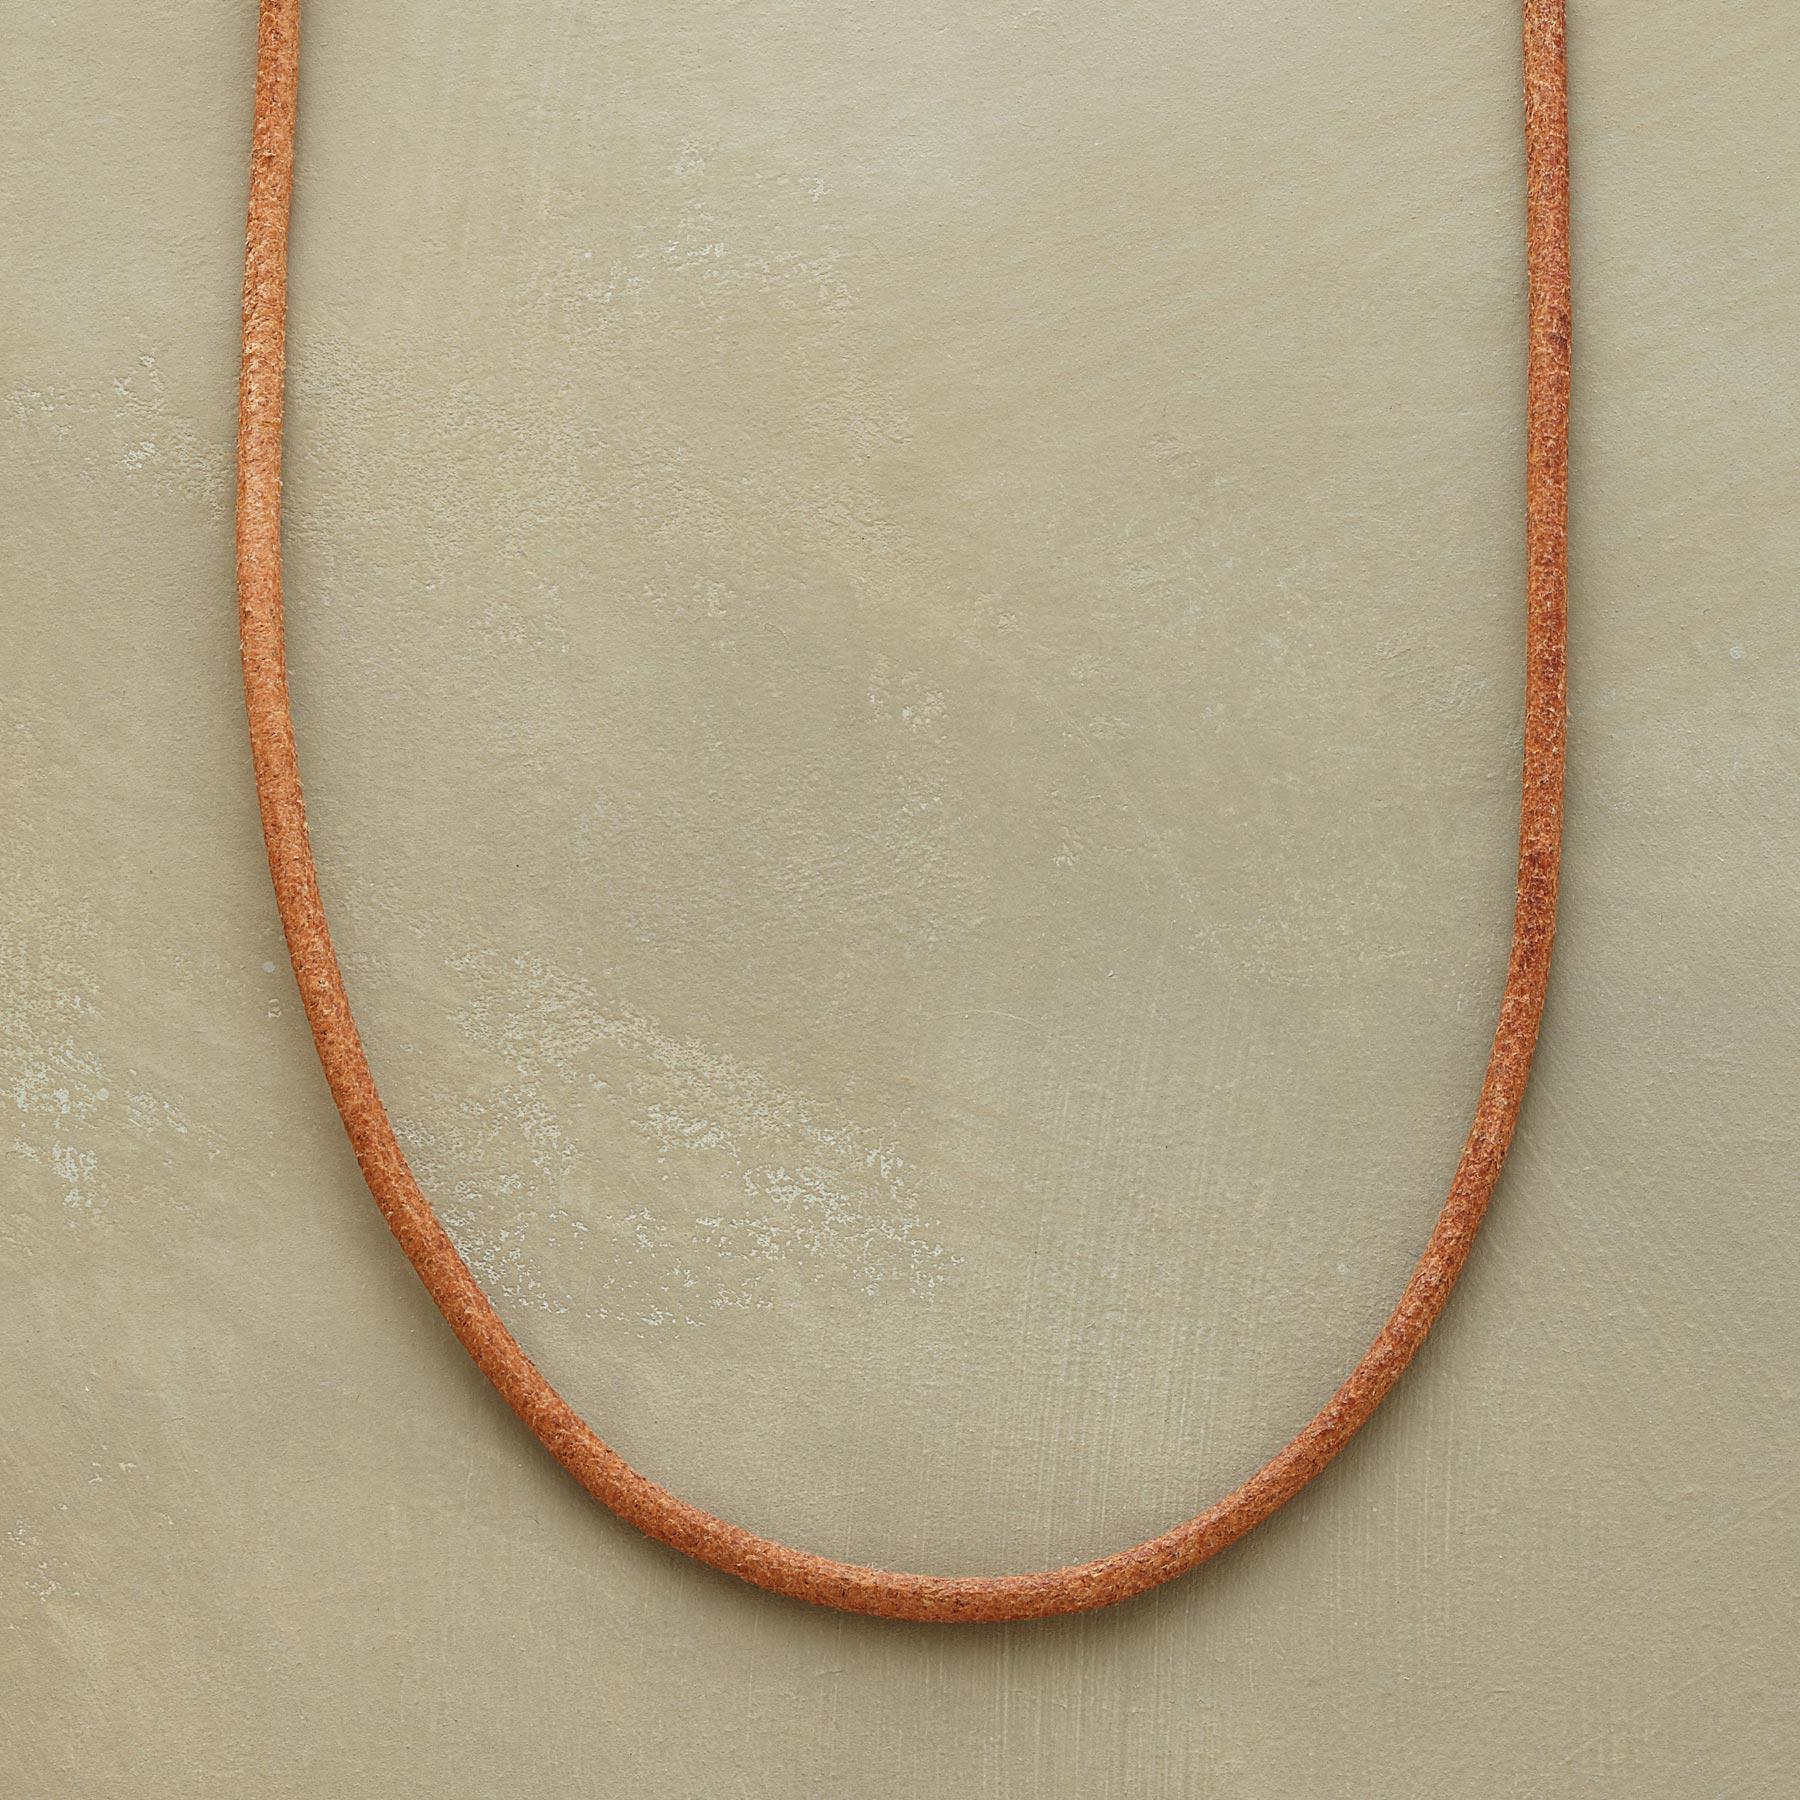 Leather Charmstarter Necklace Sundance Handcrafted Artisan Jewelry